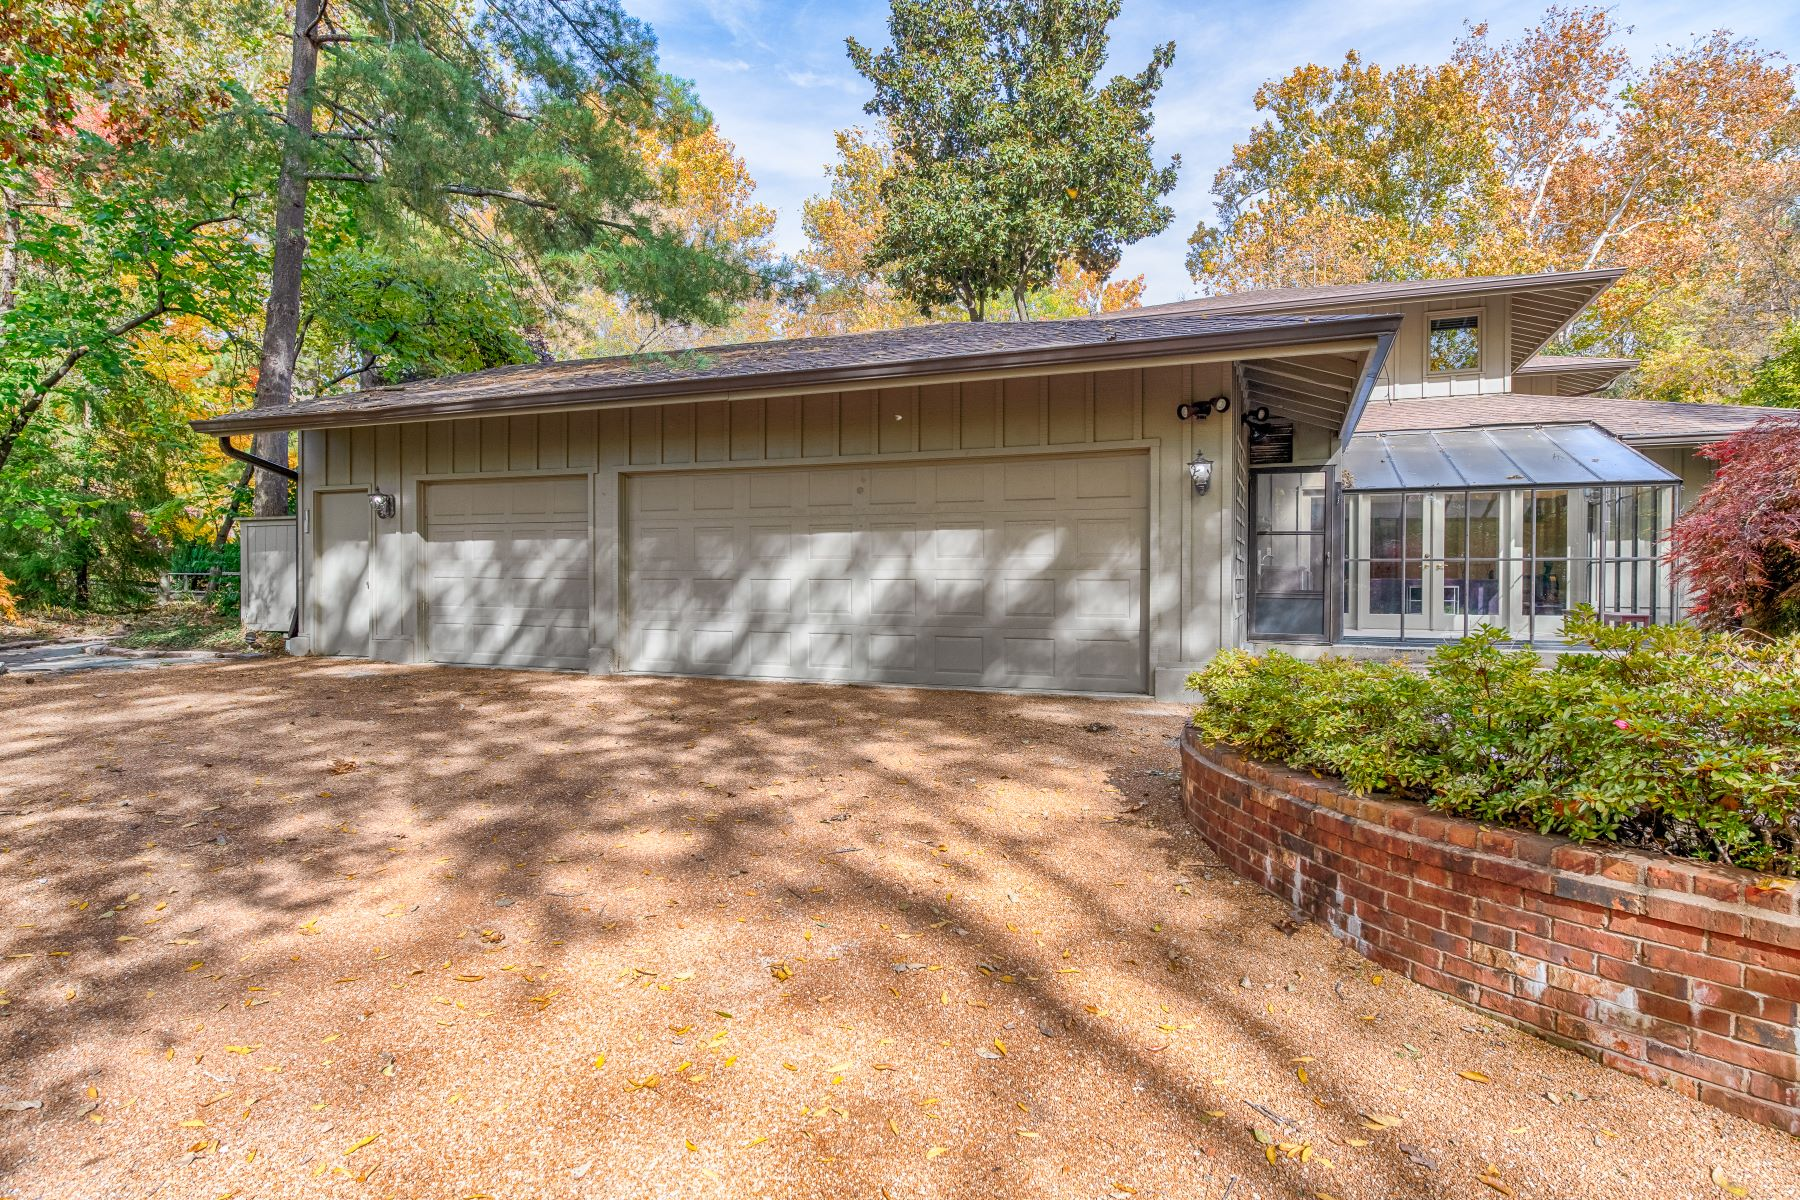 Additional photo for property listing at Important Contemporary Residence 57 Log Cabin Drive Ladue, Missouri 63124 United States